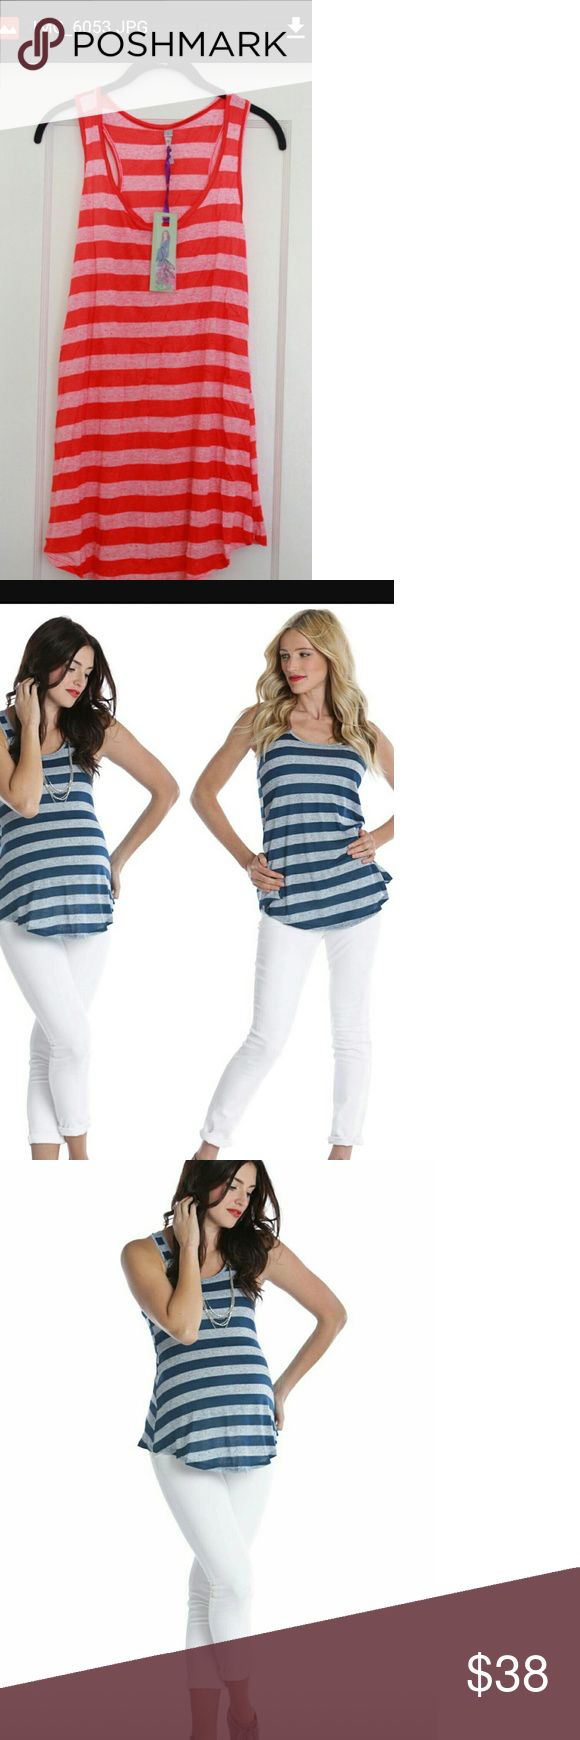 D & A Fabulous Tank from Lilac Clothing NWT NEW Coming soon, this adorable striped tank from Lilac Clothing! All Lilac's styles are designed fit beautifully whether you are pregnant or not. This is great with jeans, shorts, capris, use it as a swim cover up, or an extra layer when nursing. Lilac designer clothing is made to fit and look beautiful and a whole 10 months and beyond! Blue or coral striped available. No offers on new items, please. Enjoy your pregnancy! Lilac Clothing Tops Tank…